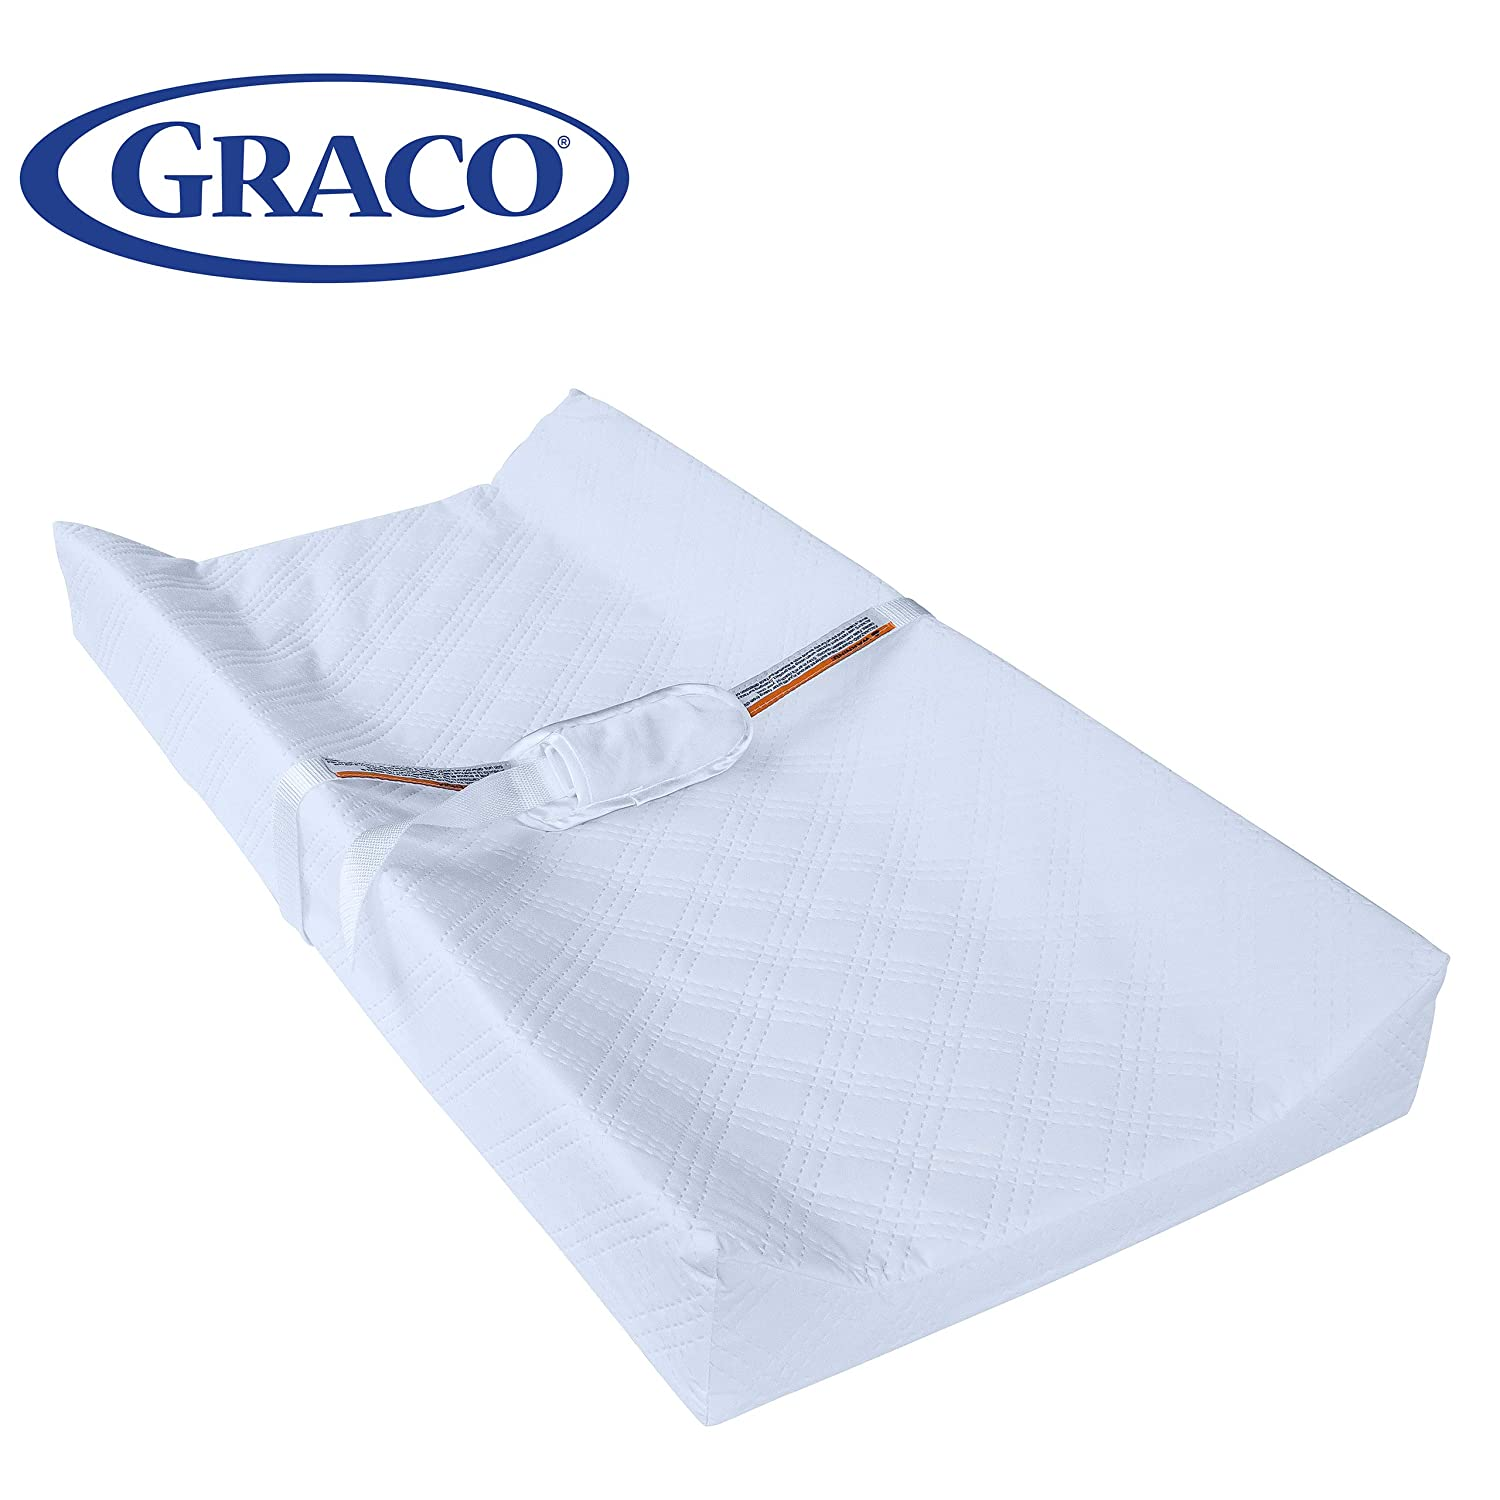 Graco Premium Contoured Infant and Baby Changing Pad - Ultra Soft Buckle Cover for Premium Comfort, Water Resistant, Baby Safety Belt, Non-Skid Bottom, Fits Standard Size Changing Topper